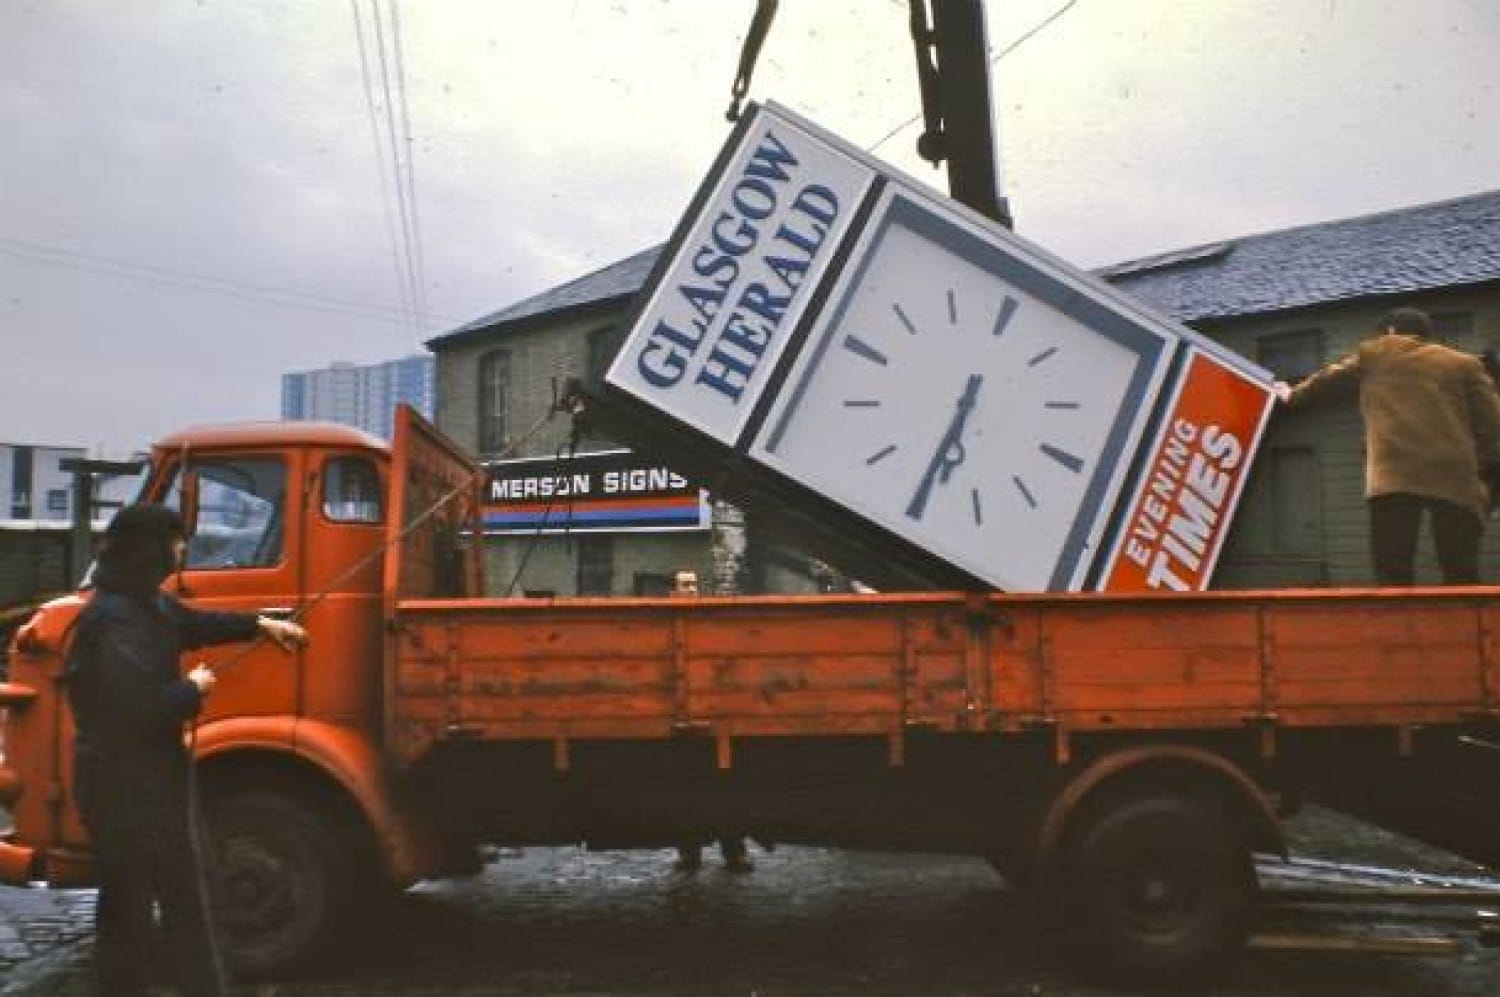 It's 1971, and staff from Glasgow's Merson's Signs load up the new clock for the front of the building (Picture: http://www.merson-signs.com/)